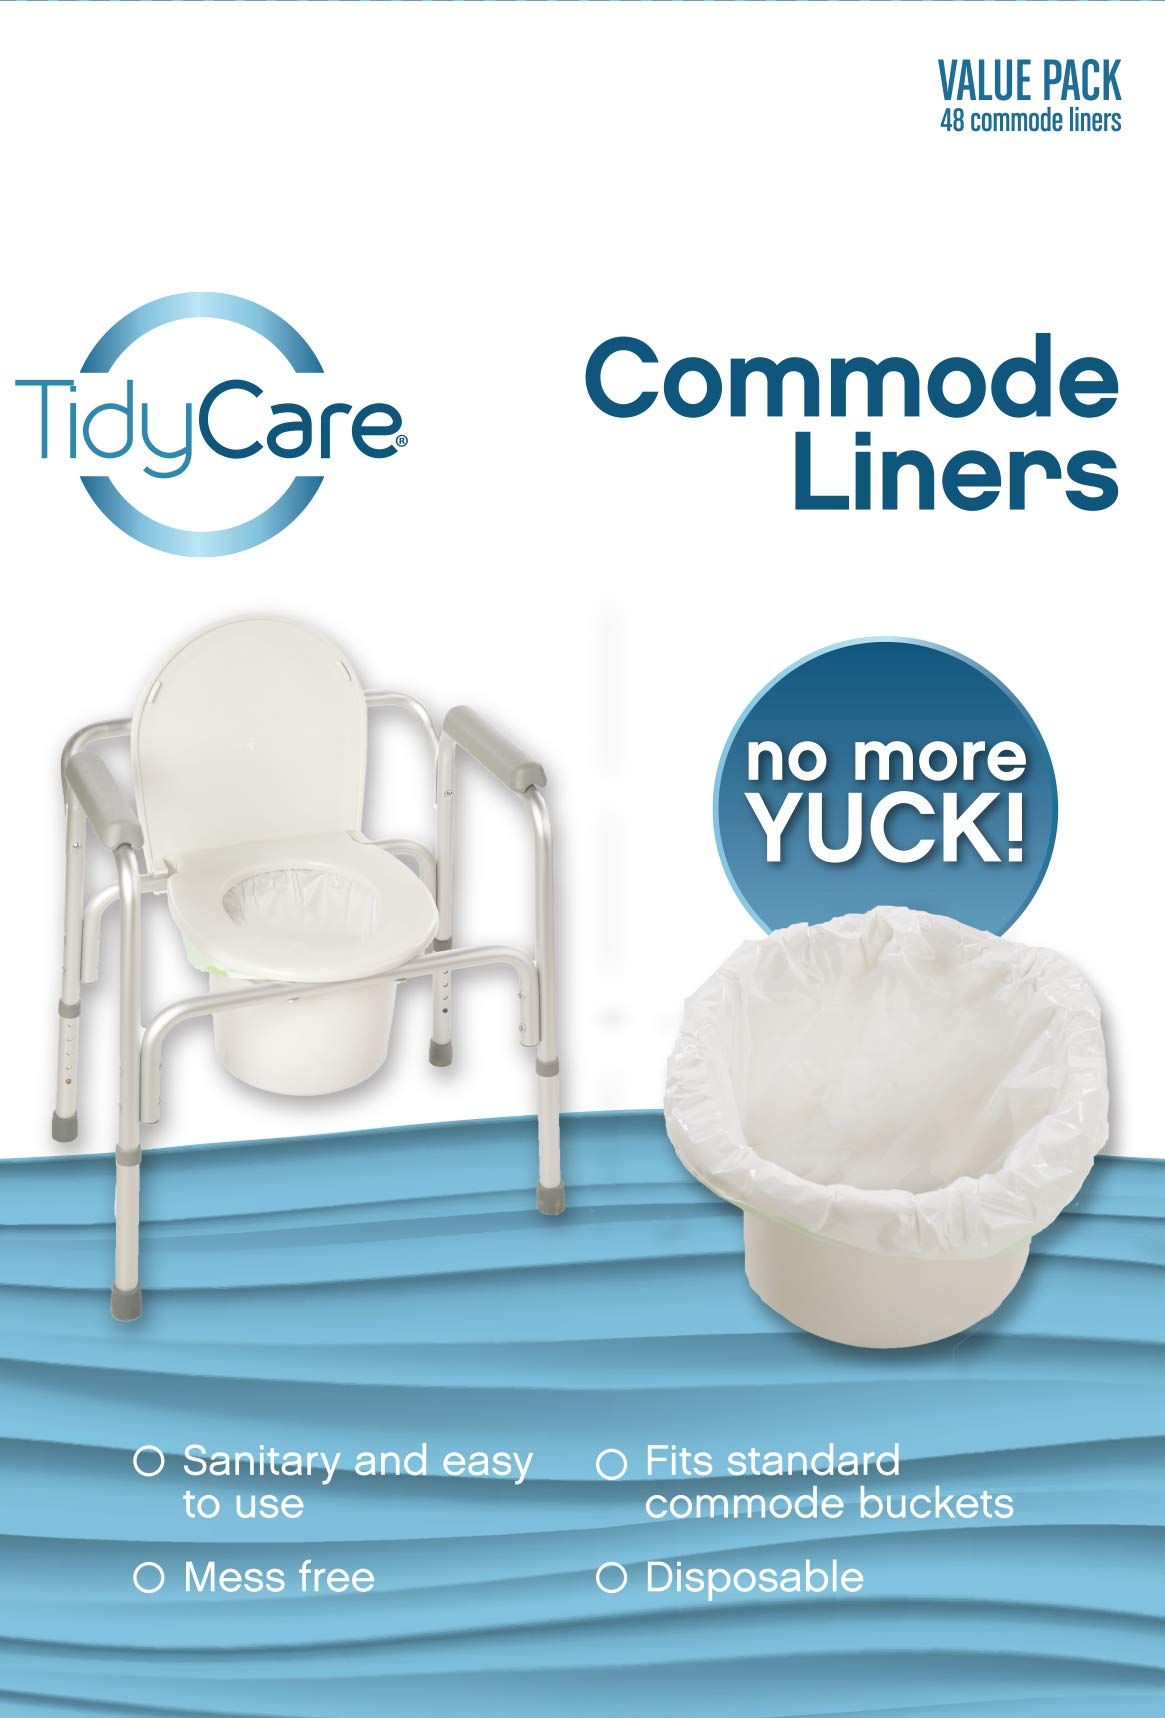 TidyCare Commode Liners - Value Pack - Disposable Bedside Commode Liners - 2 Packs of 48 Commode Liners (96 Total Liners) - Adult Commode Chair - Commode Pail Liners